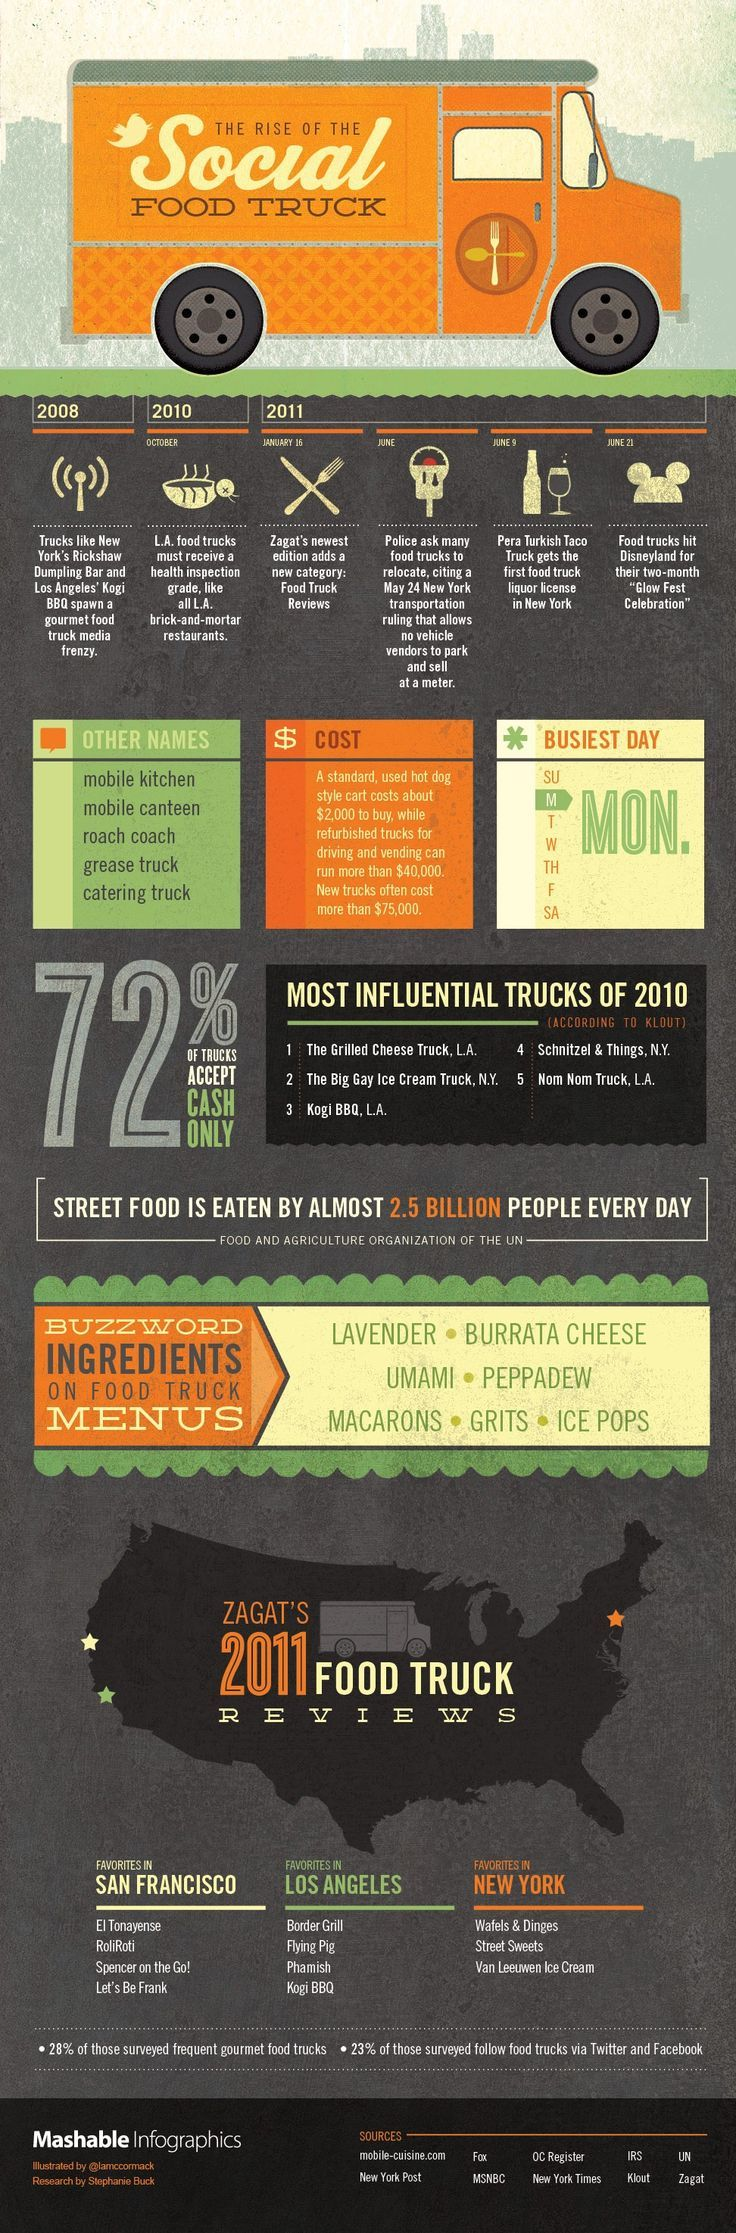 The rocket pizza food truck grits grids - Food Inspiration The Rise Of The Social Food Truck Infographic